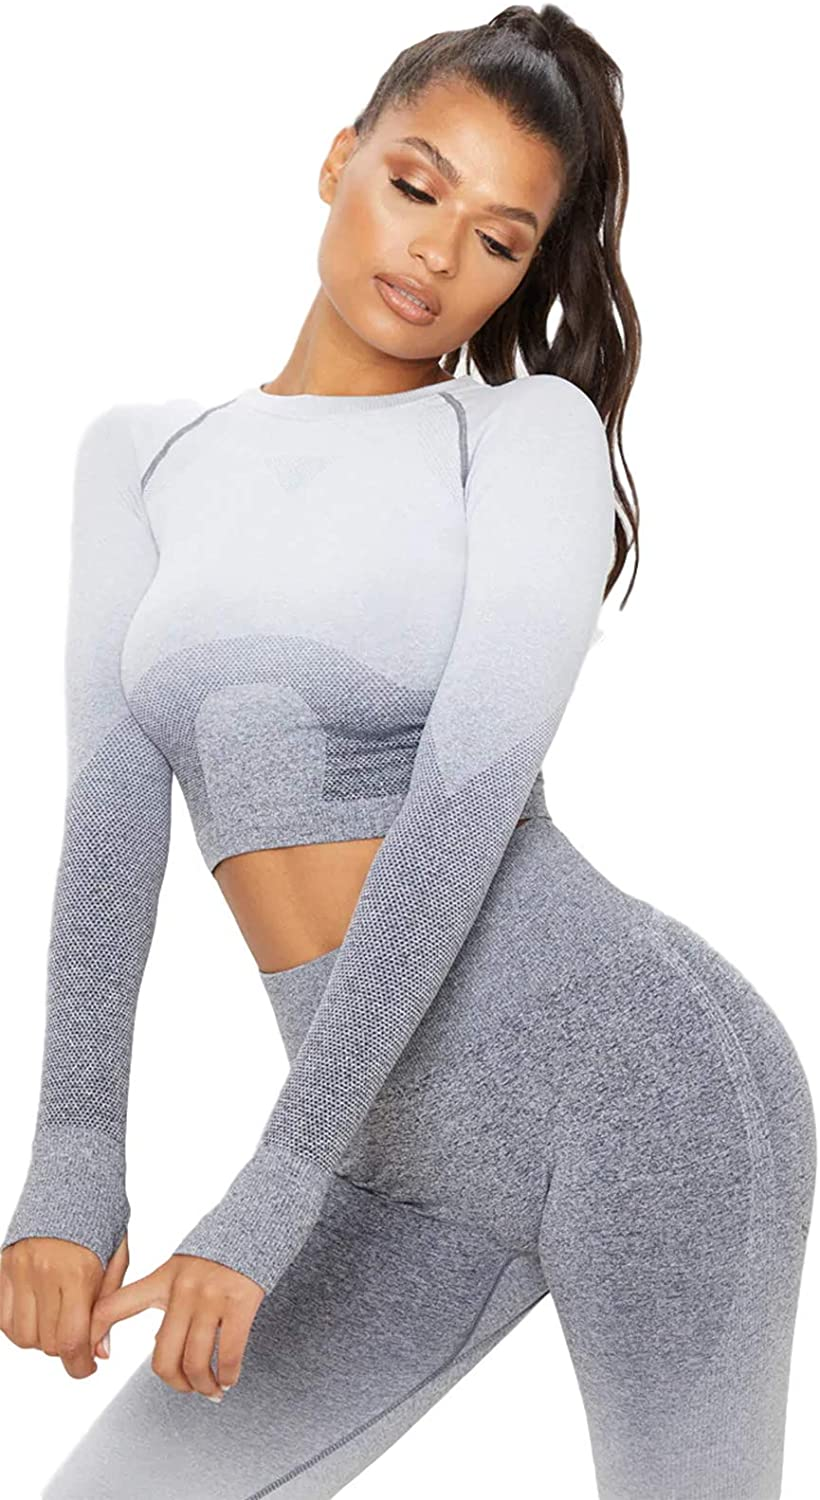 Seamless Ombre Long Sleeve Crop Top Fitness Workout Gym Running Yoga Excise Shirts for Women